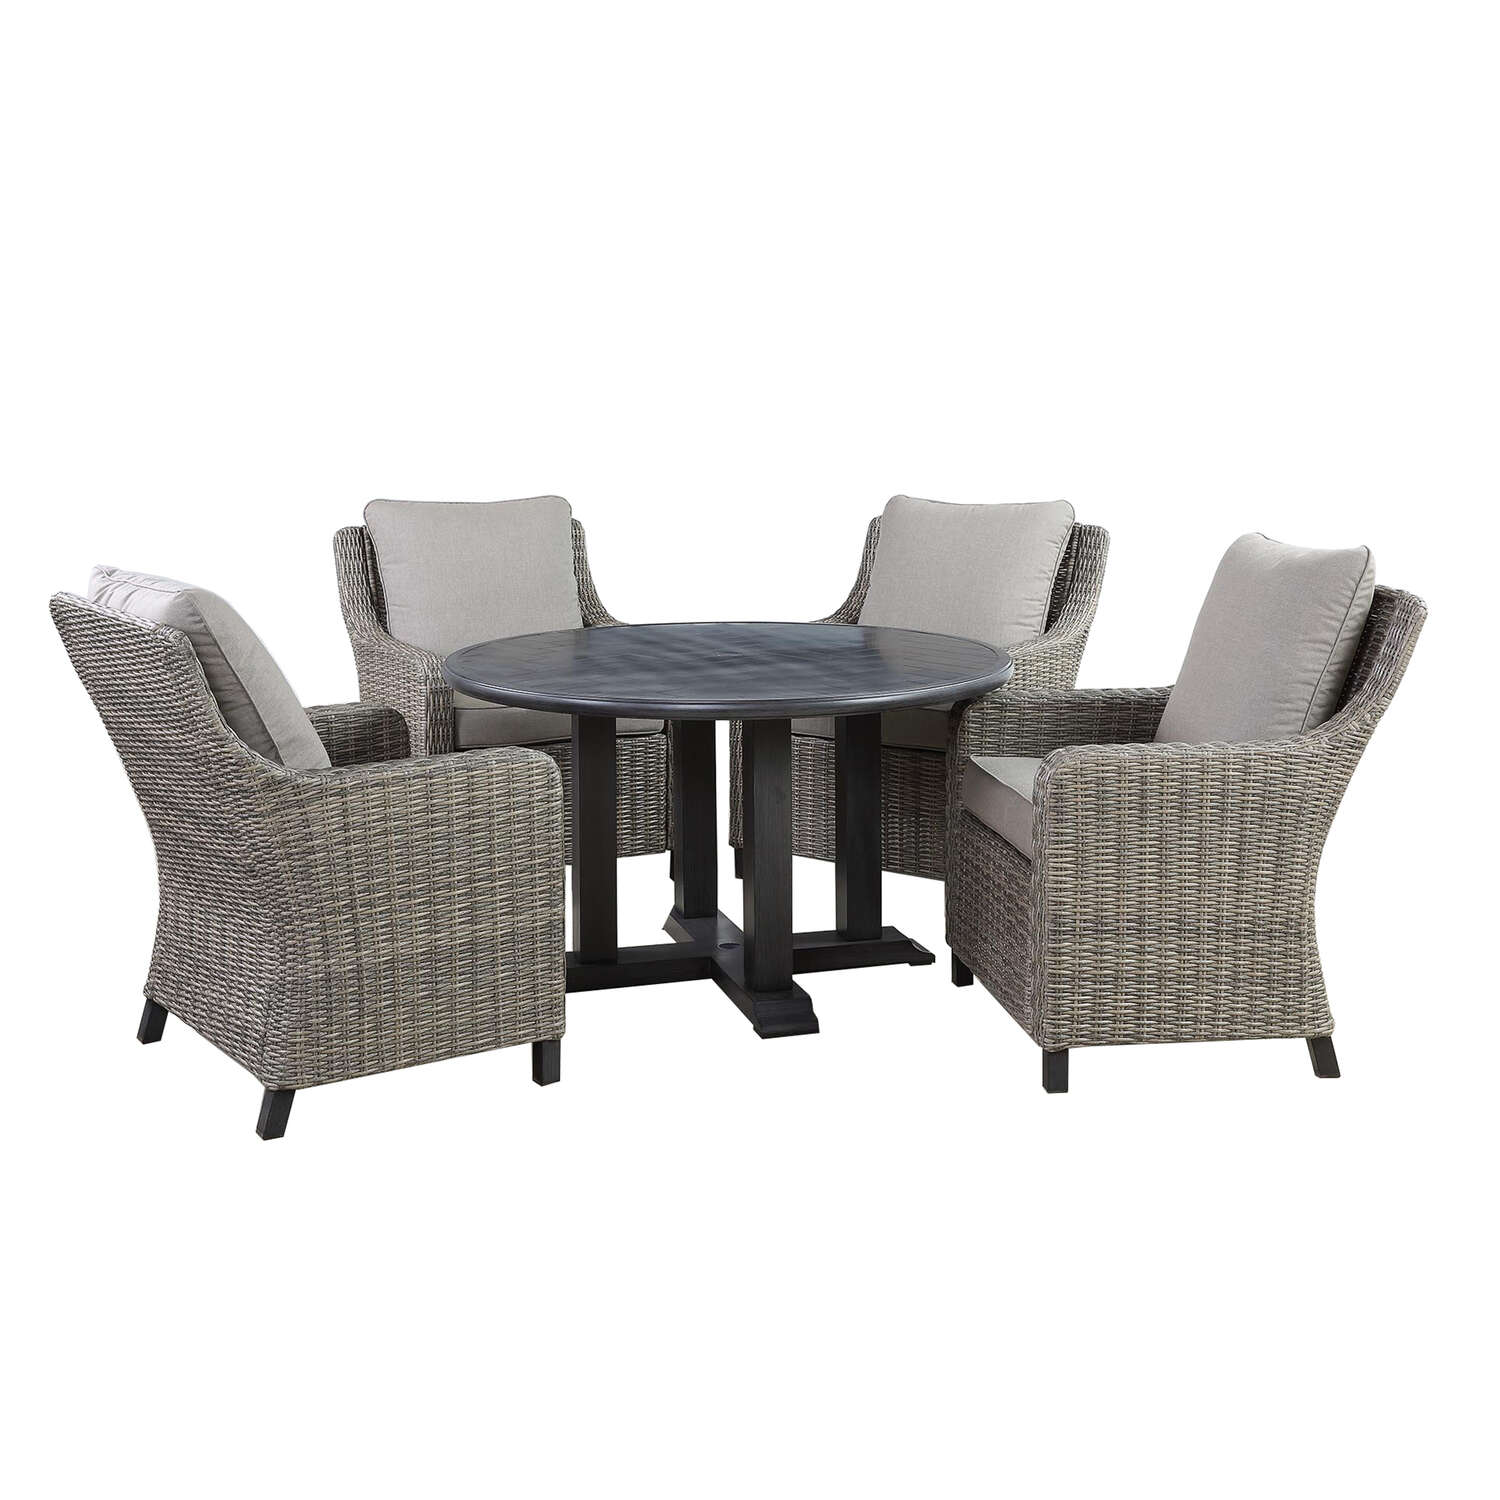 Living Accents Camas 5 pc. Black Aluminum Dining Set